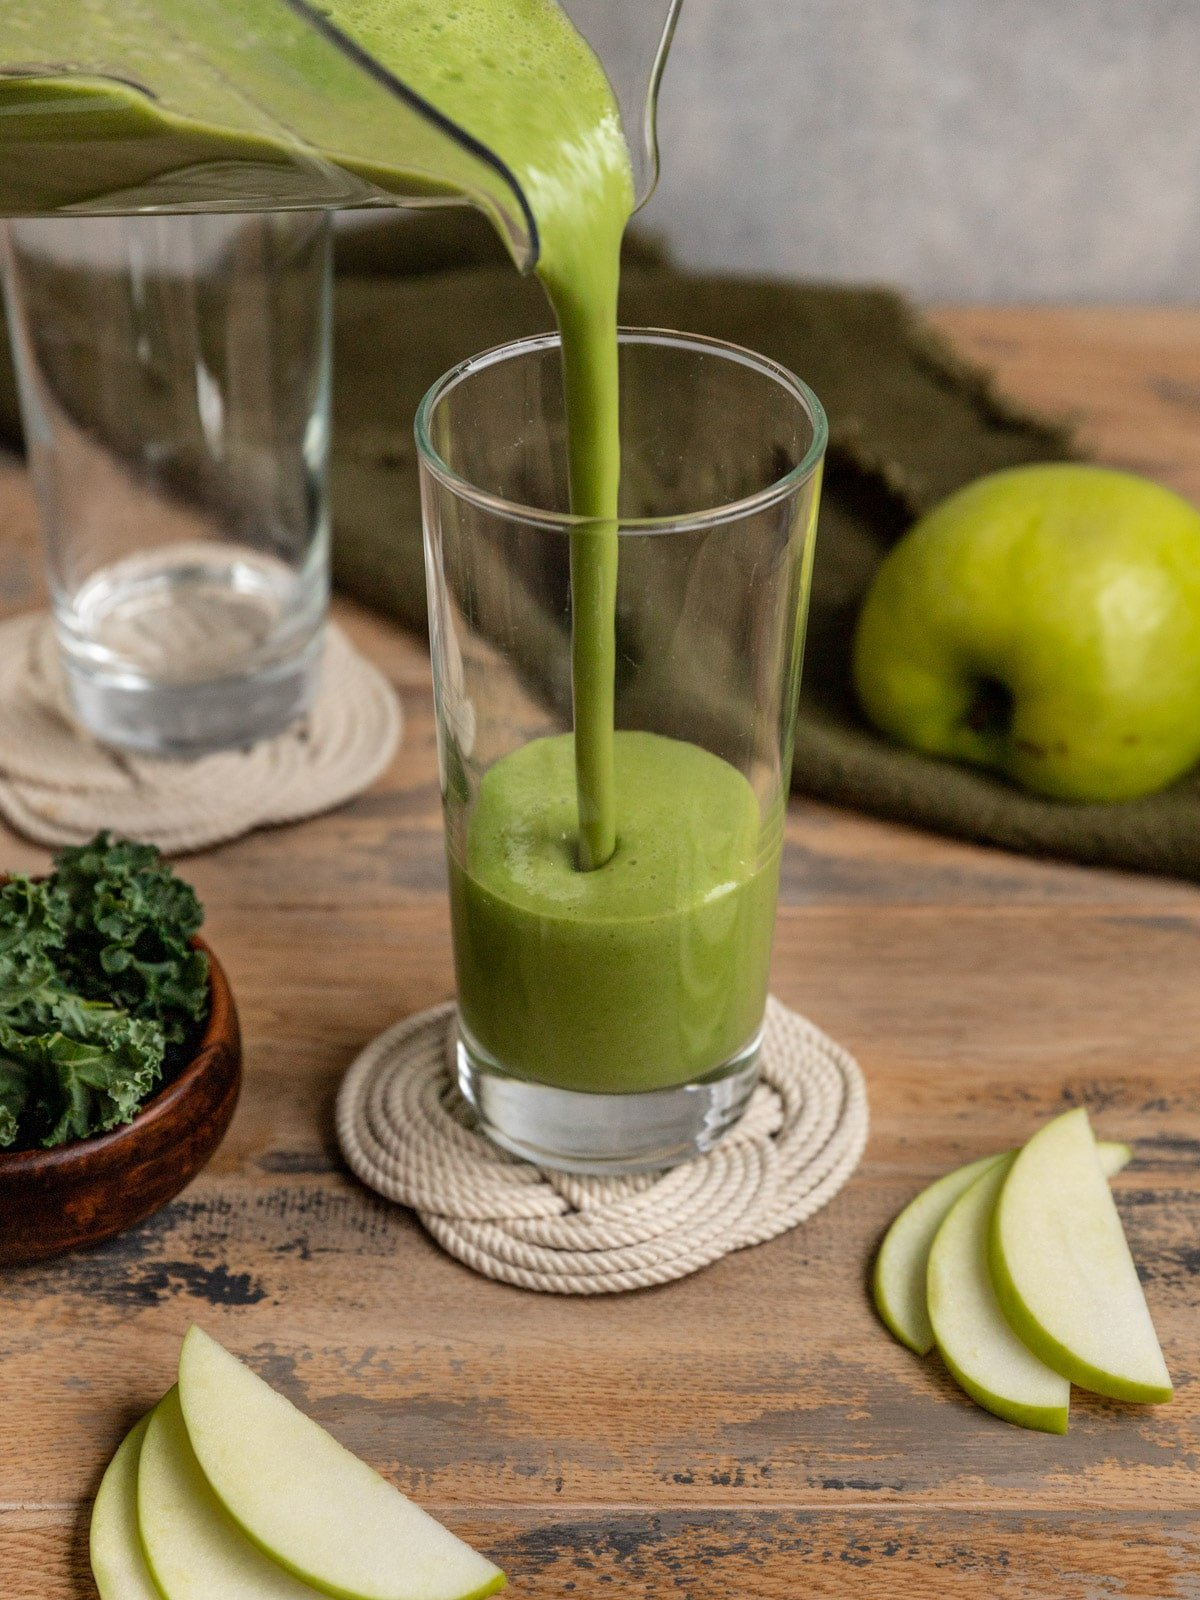 green smoothie being poured into a tall glass